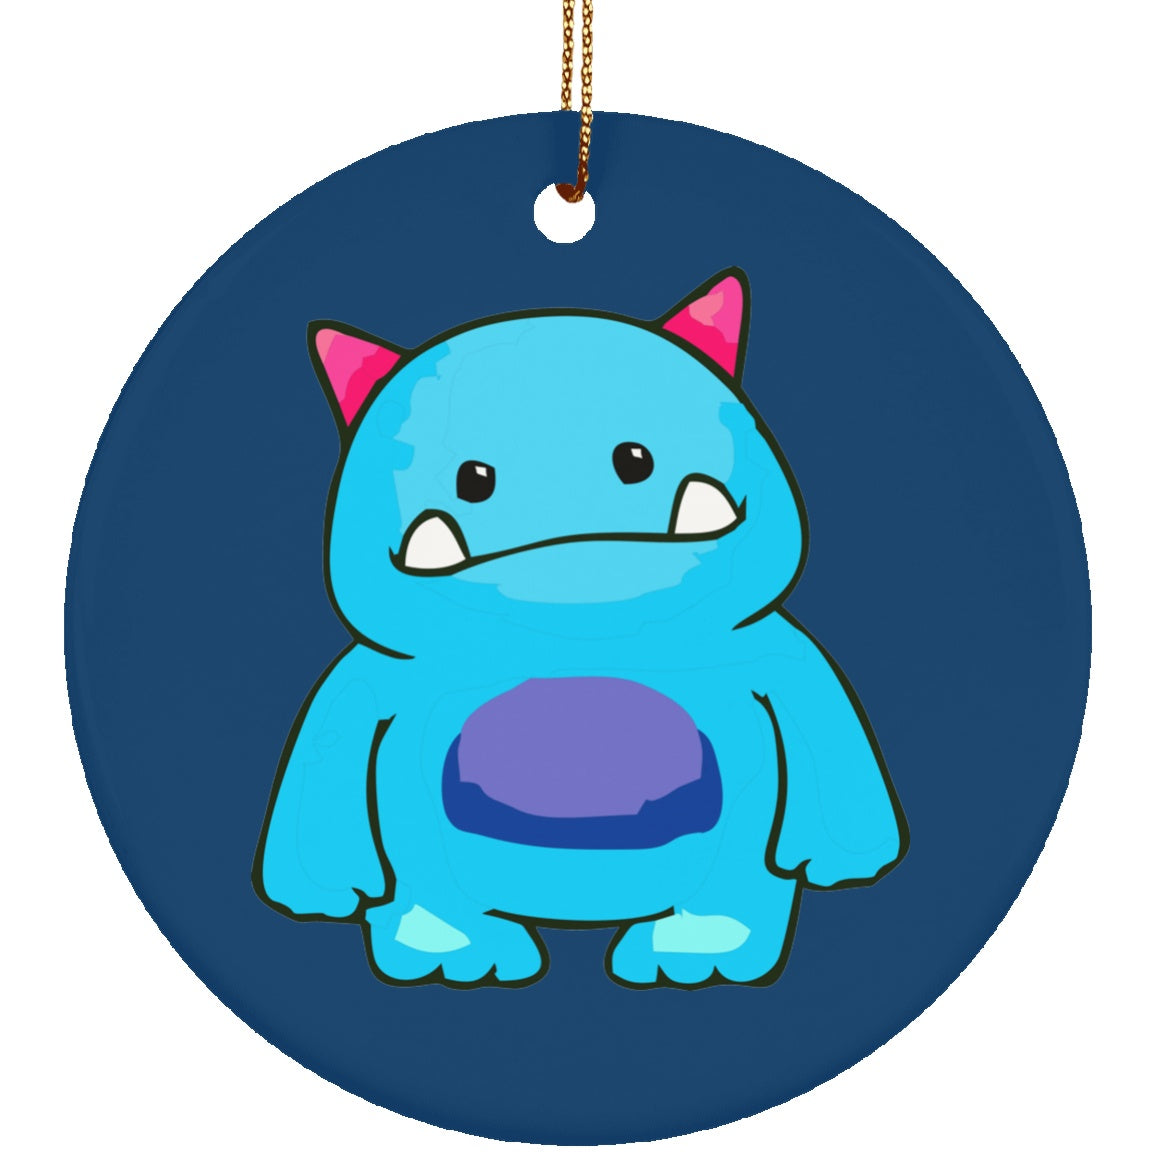 Addison's Disease Monster Circle Ornament - The Unchargeables